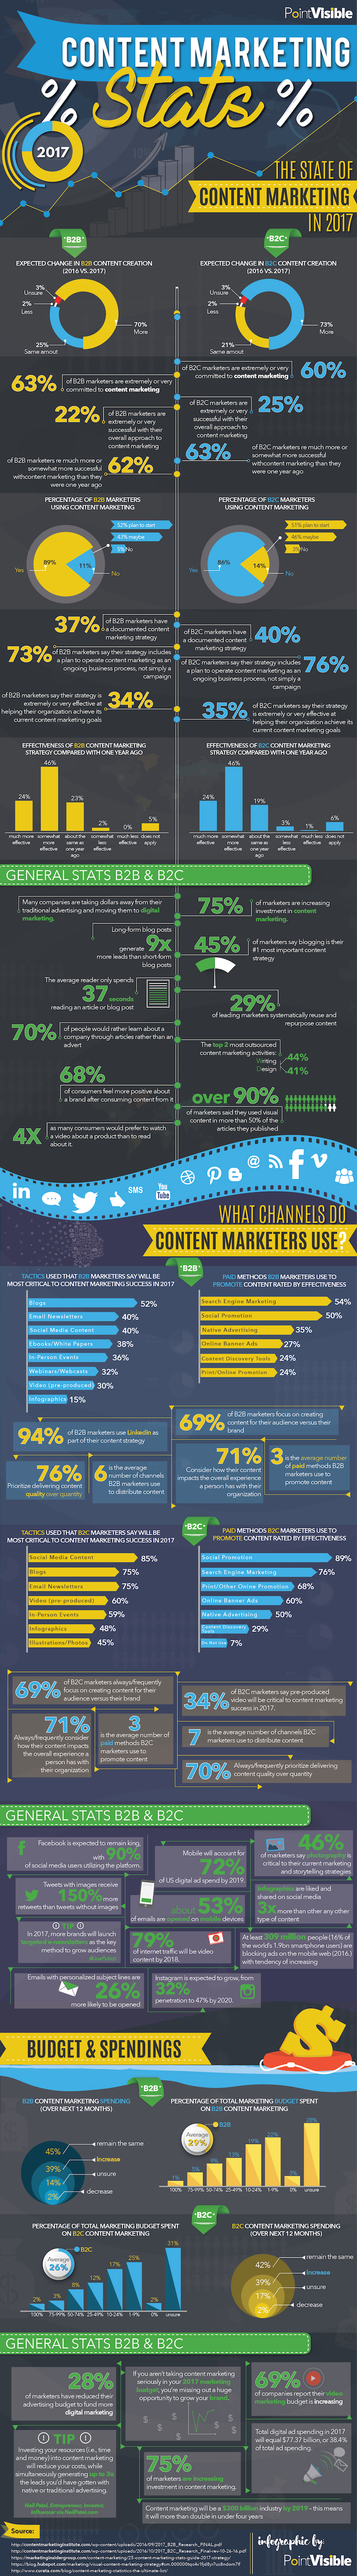 Content Marketing Statistics & Trends - 2017 Edition [infographic] | Social Media Today